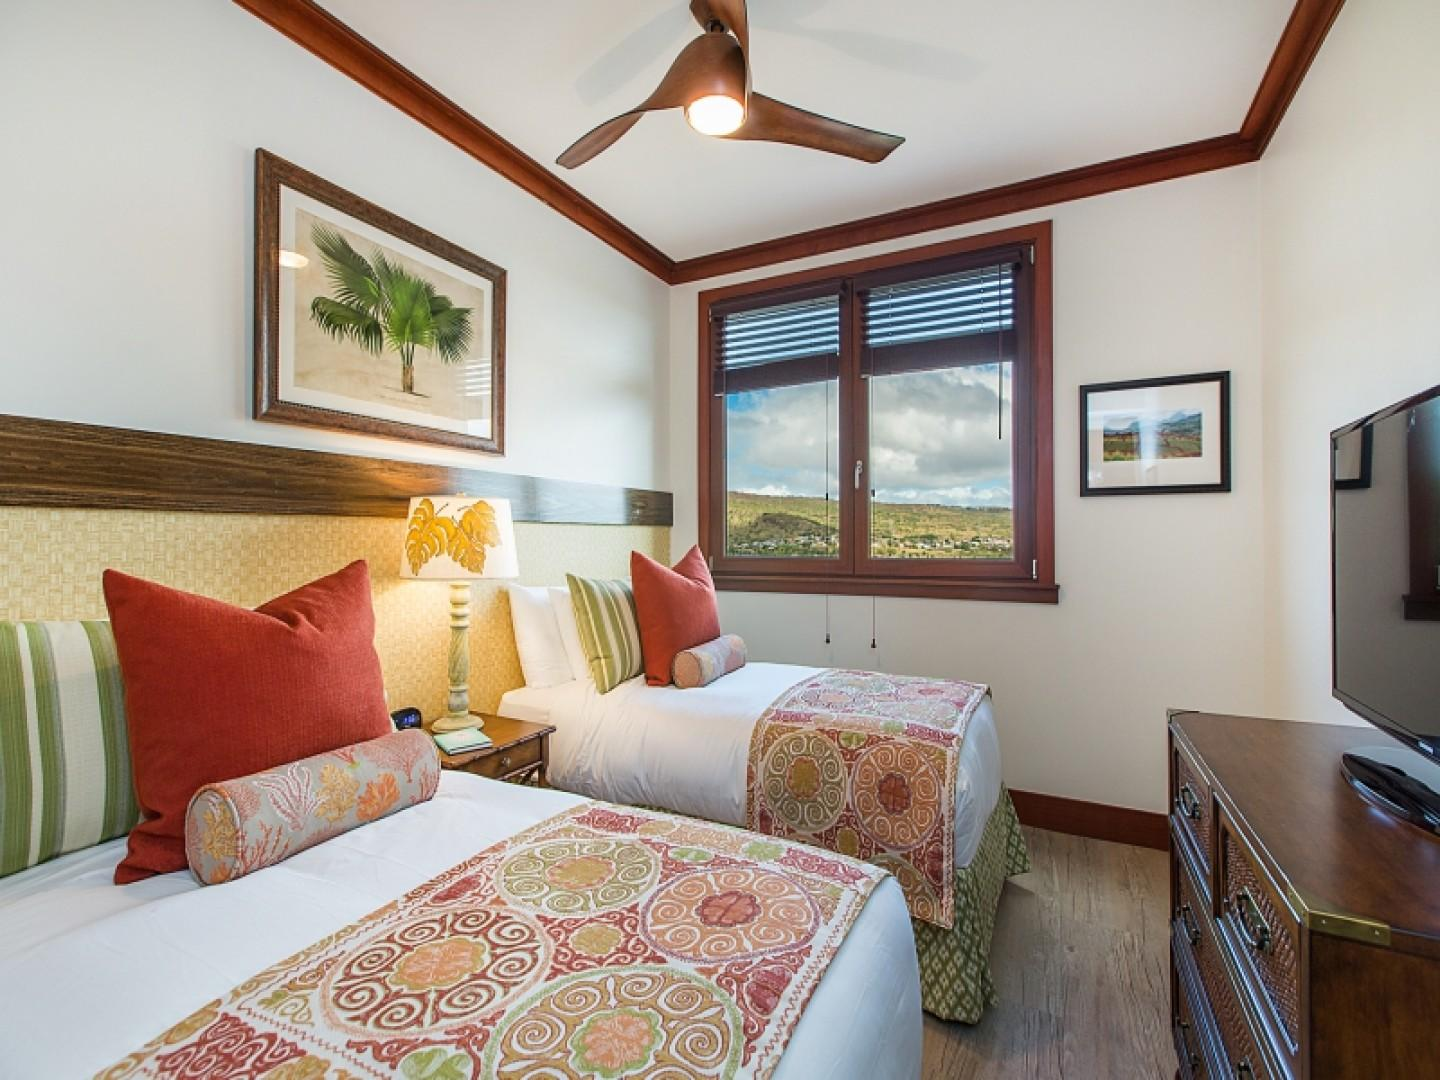 3rd bedroom with 2 twin beds that can be converted into a King size bed upon request